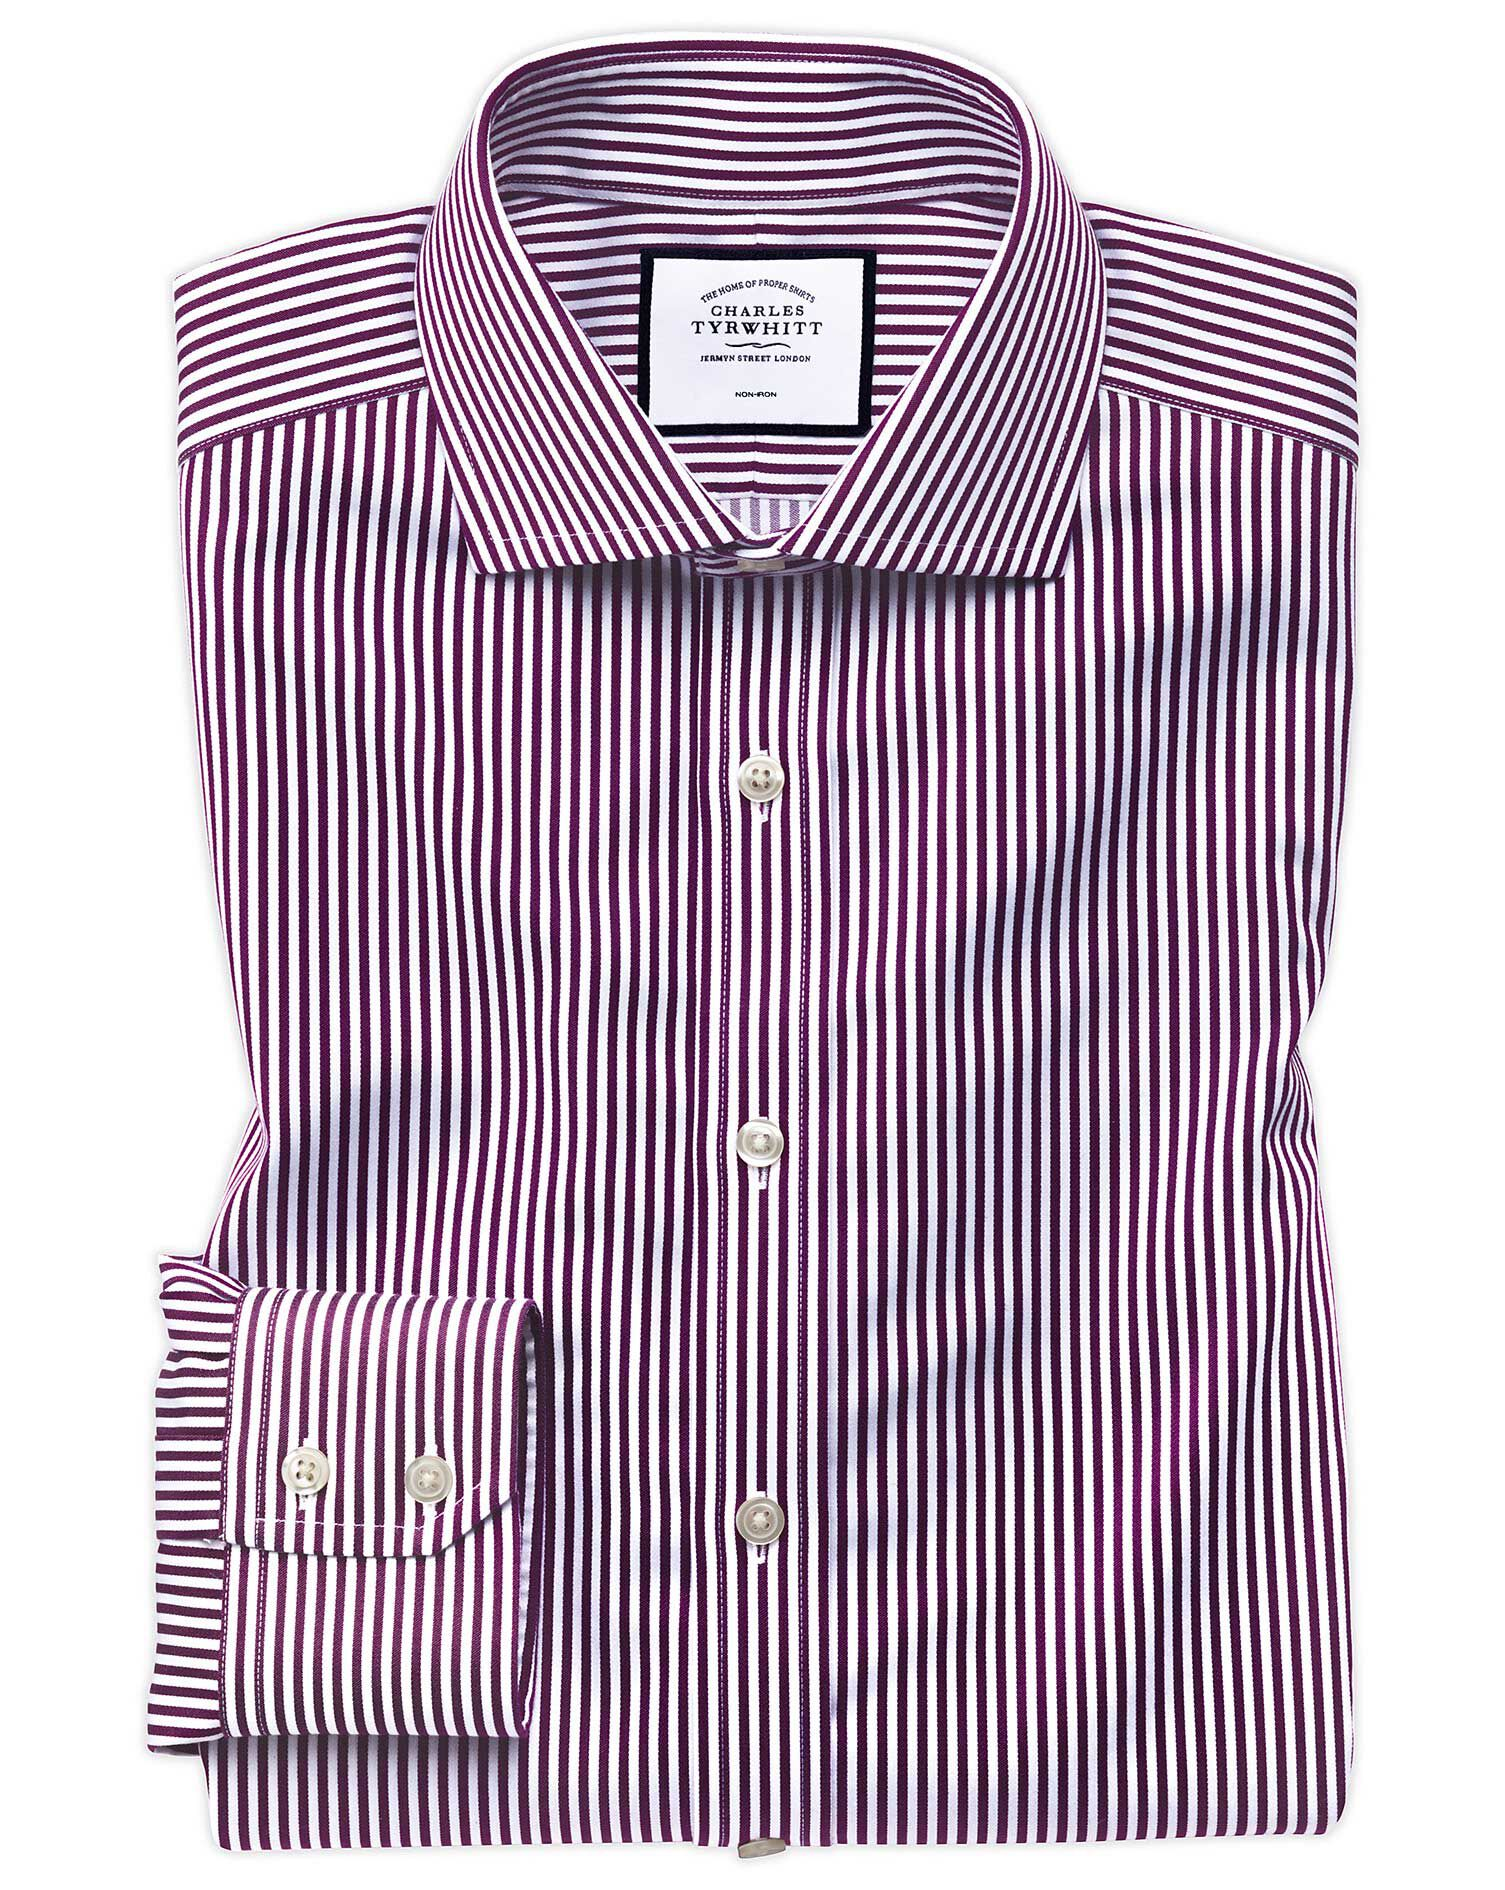 Slim Fit Non-Iron Cutaway Collar Berry Twill Stripe Cotton Formal Shirt Single Cuff Size 15.5/32 by